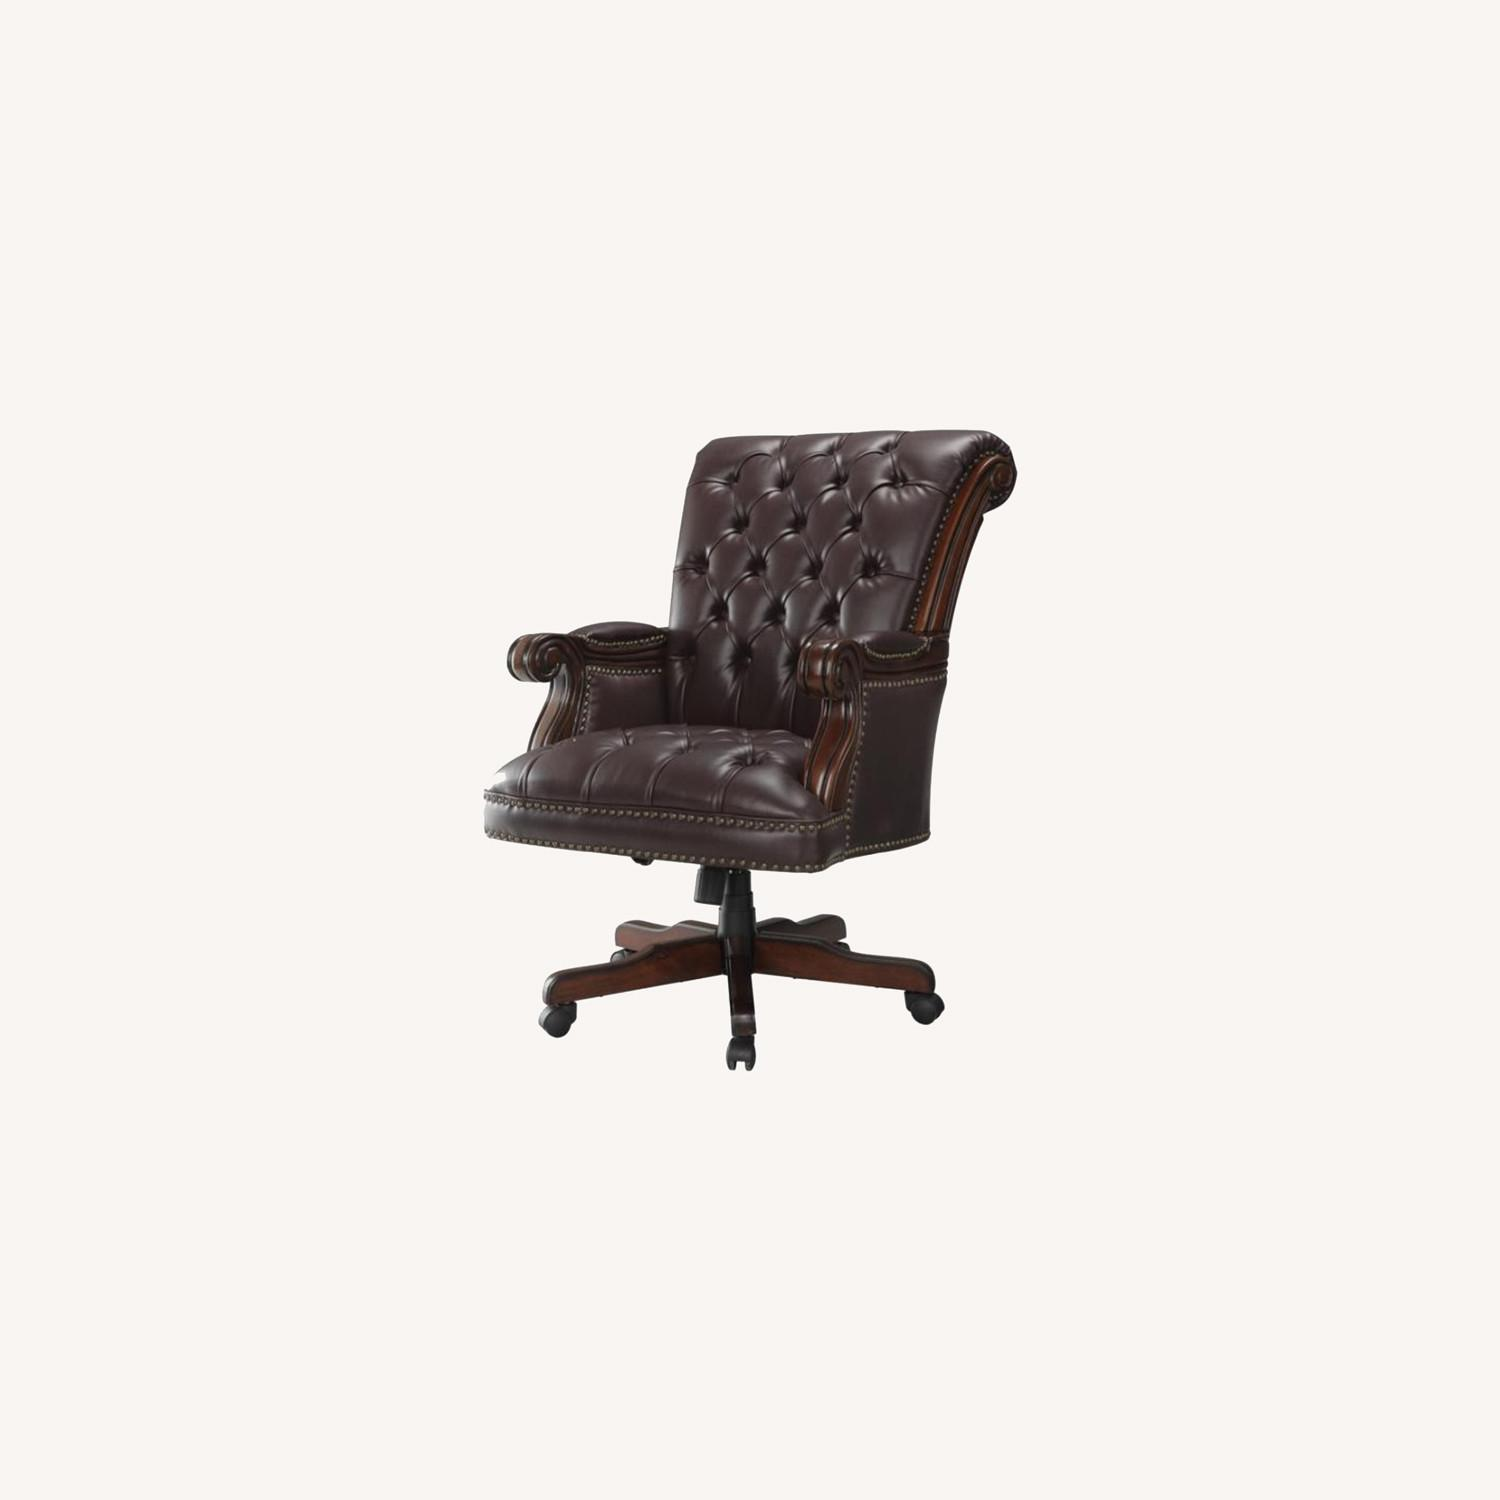 Office Chair In Dark Brown Finish - image-4